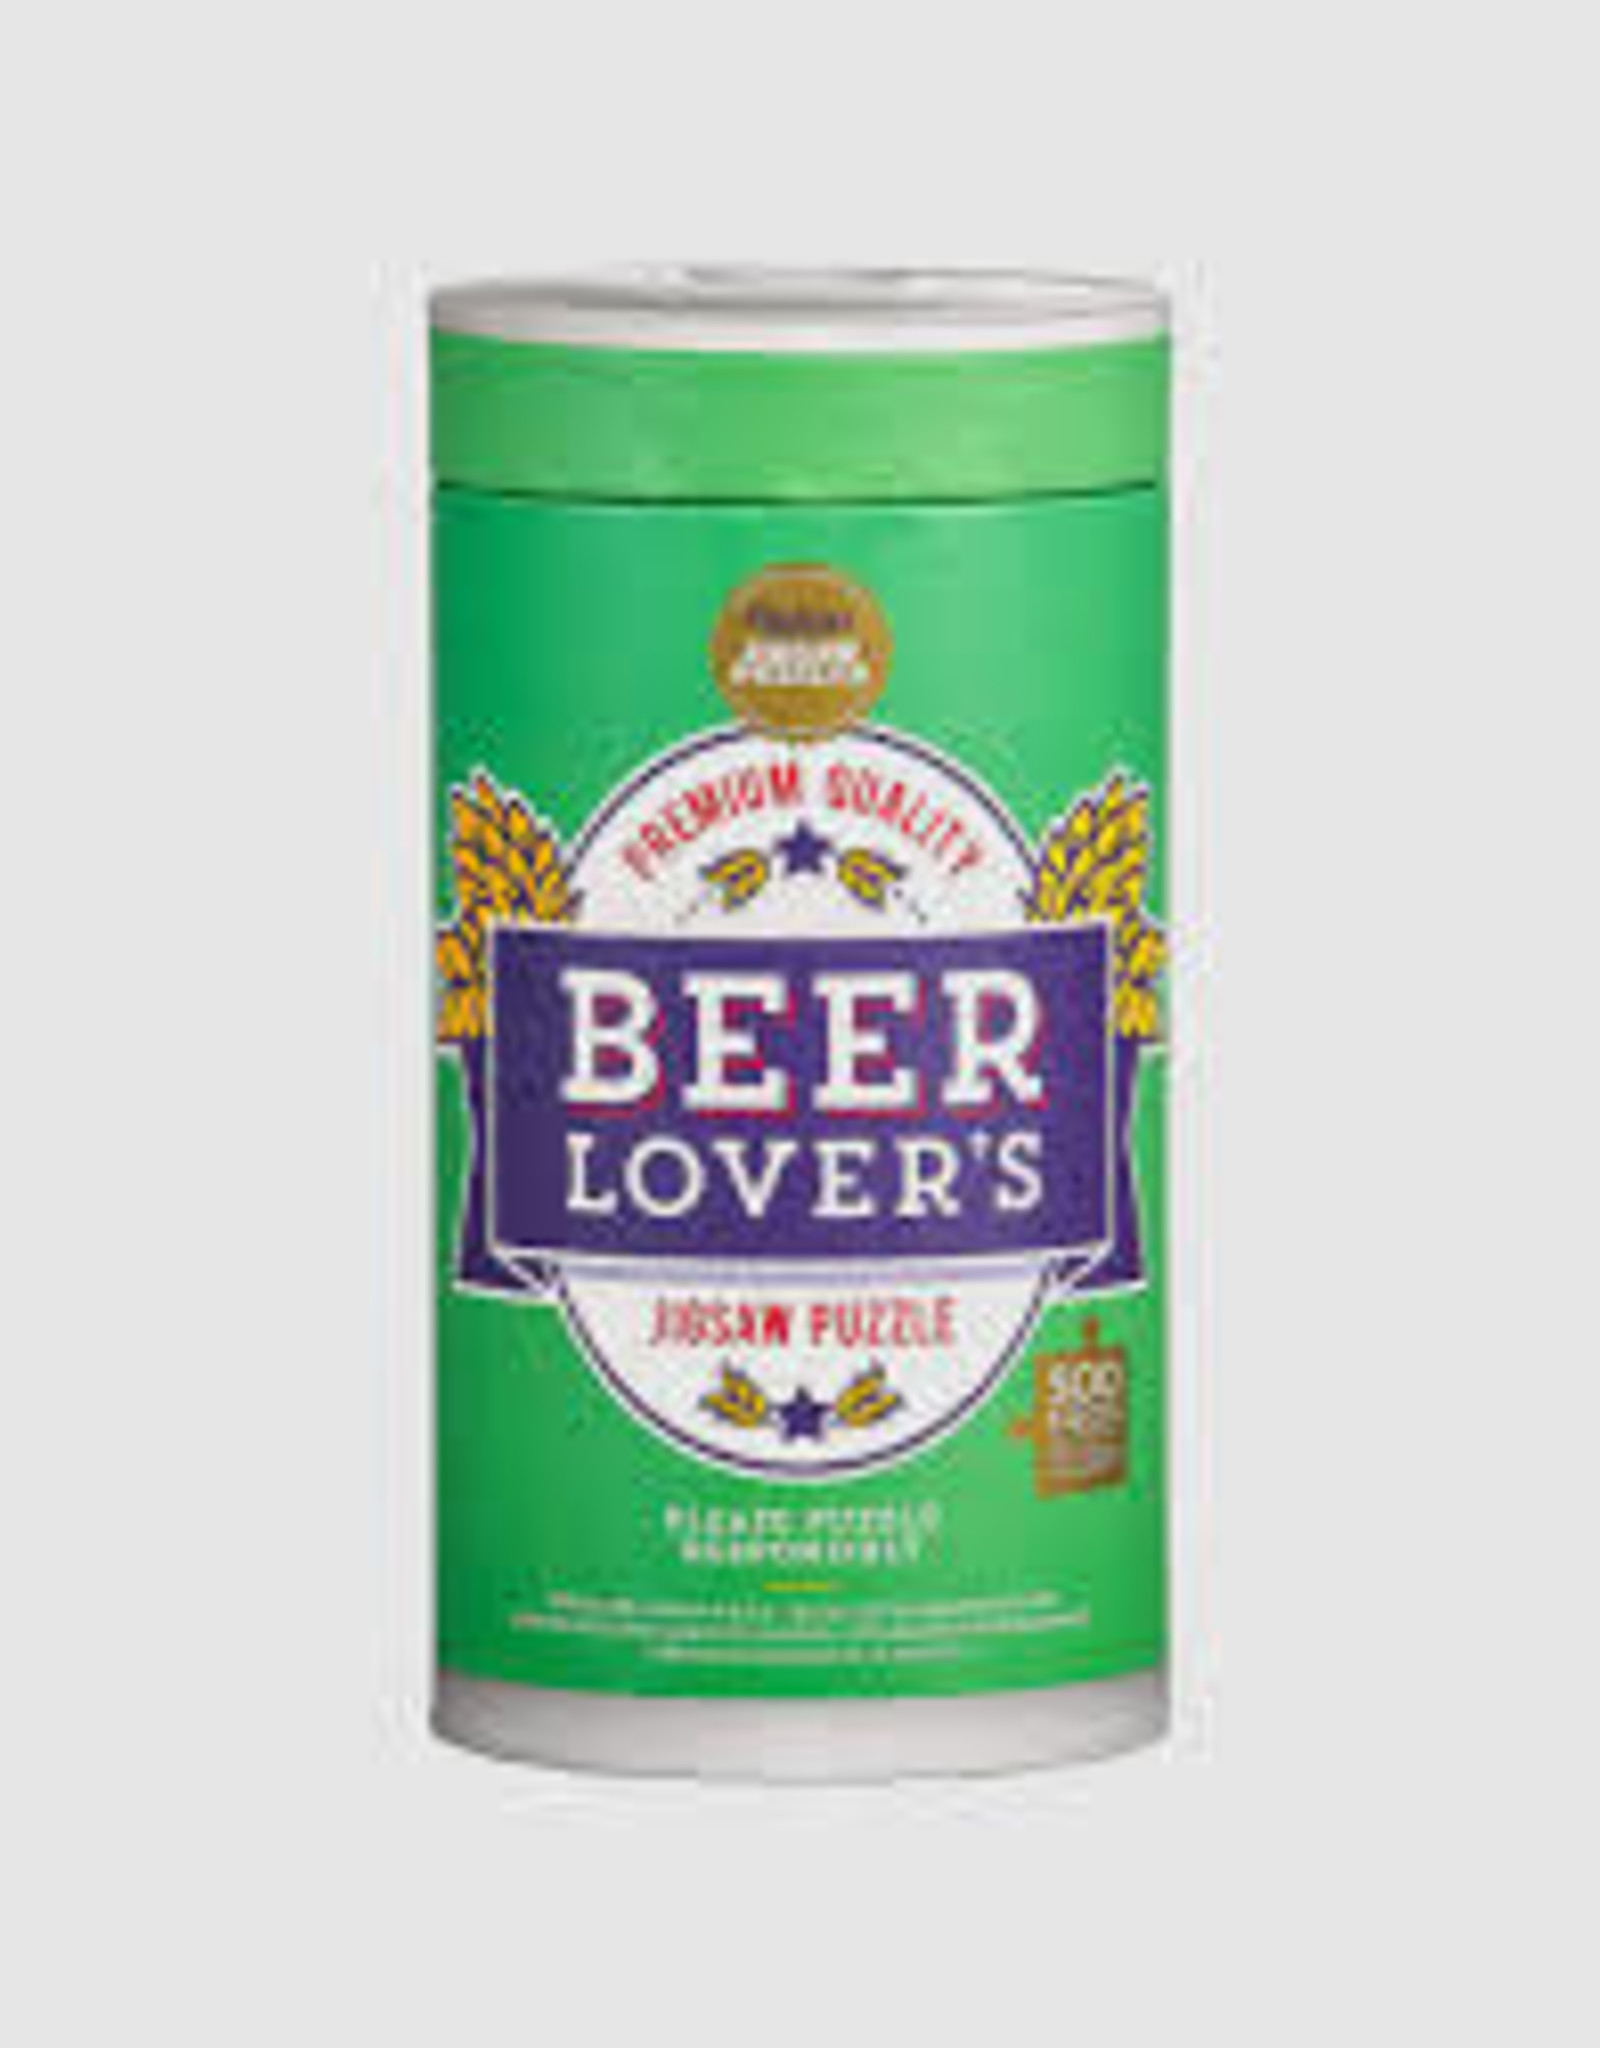 Ridley's BEER LOVER'S JIGSAW PUZZLE 500PCS